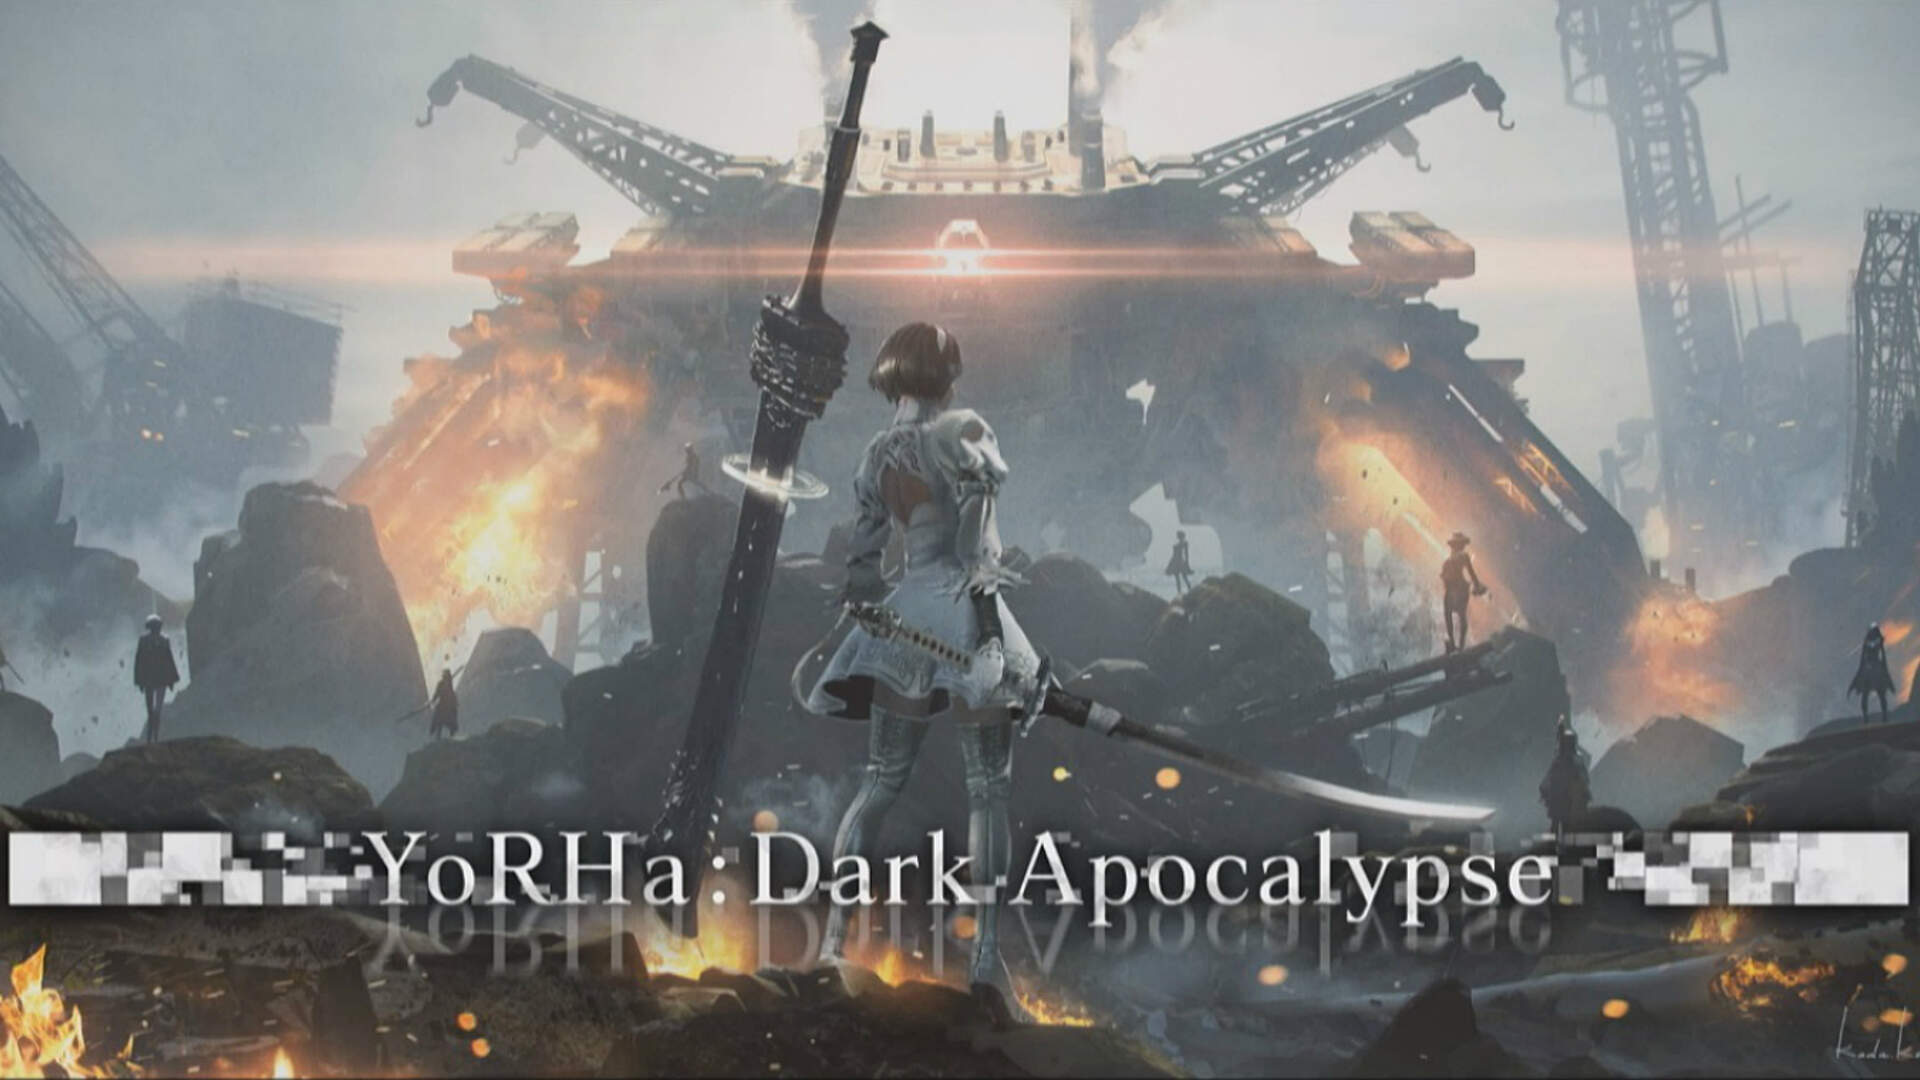 Final Fantasy 14: Shadowbringers' Alliance Raid Gets a Nier: Automata Spin From Yoko Taro